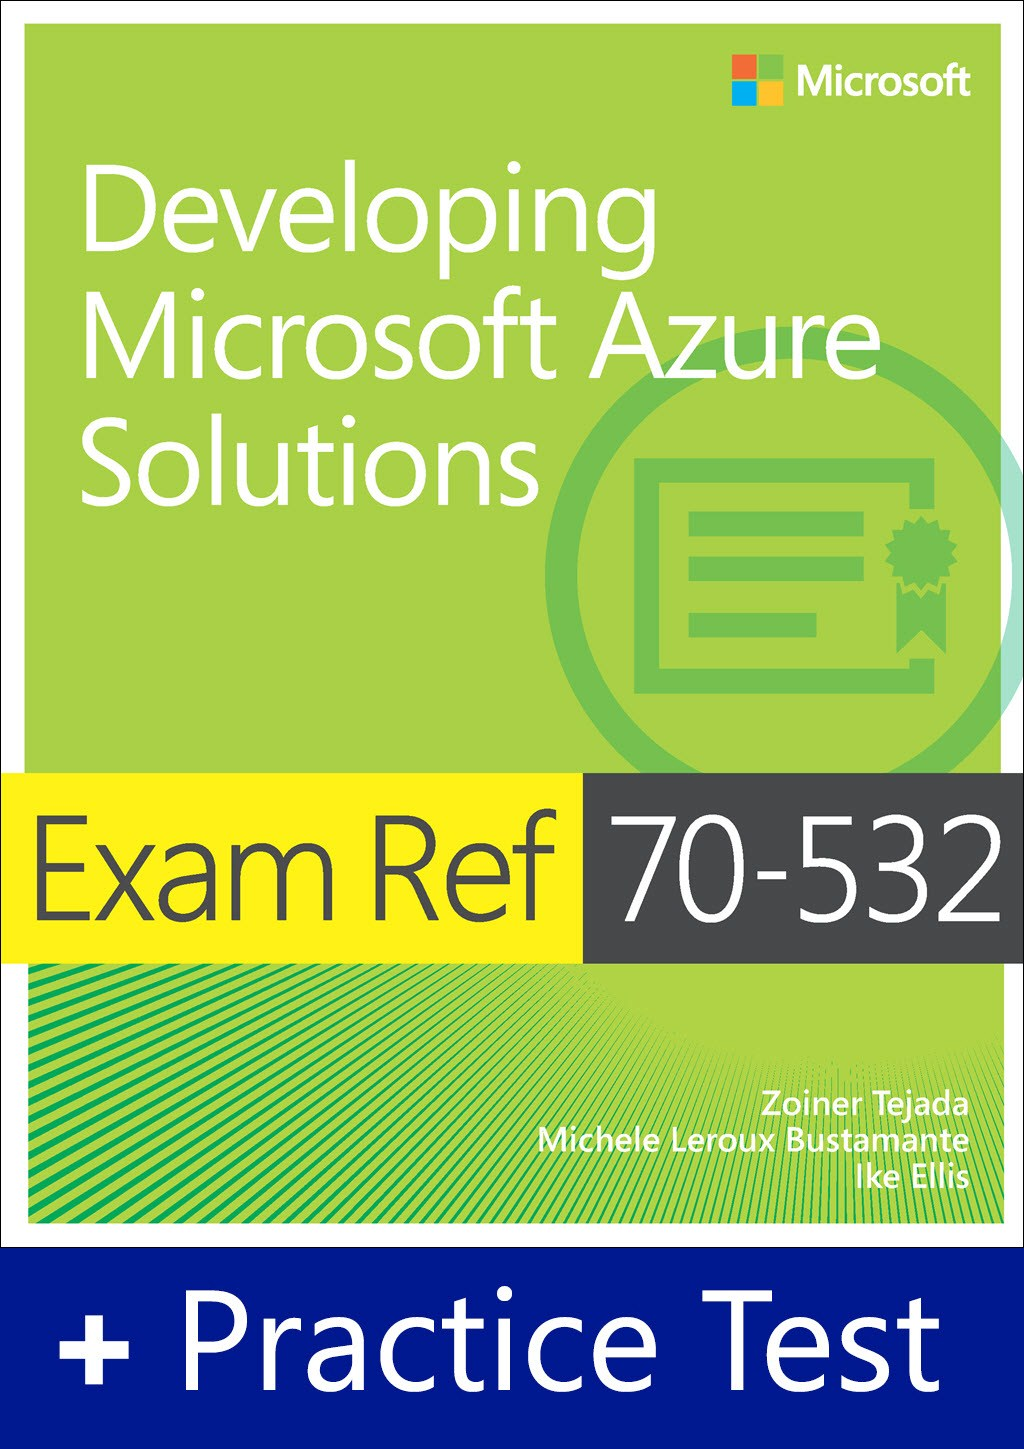 Exam Ref 70-532 Developing Microsoft Azure Solutions with Practice Test Access